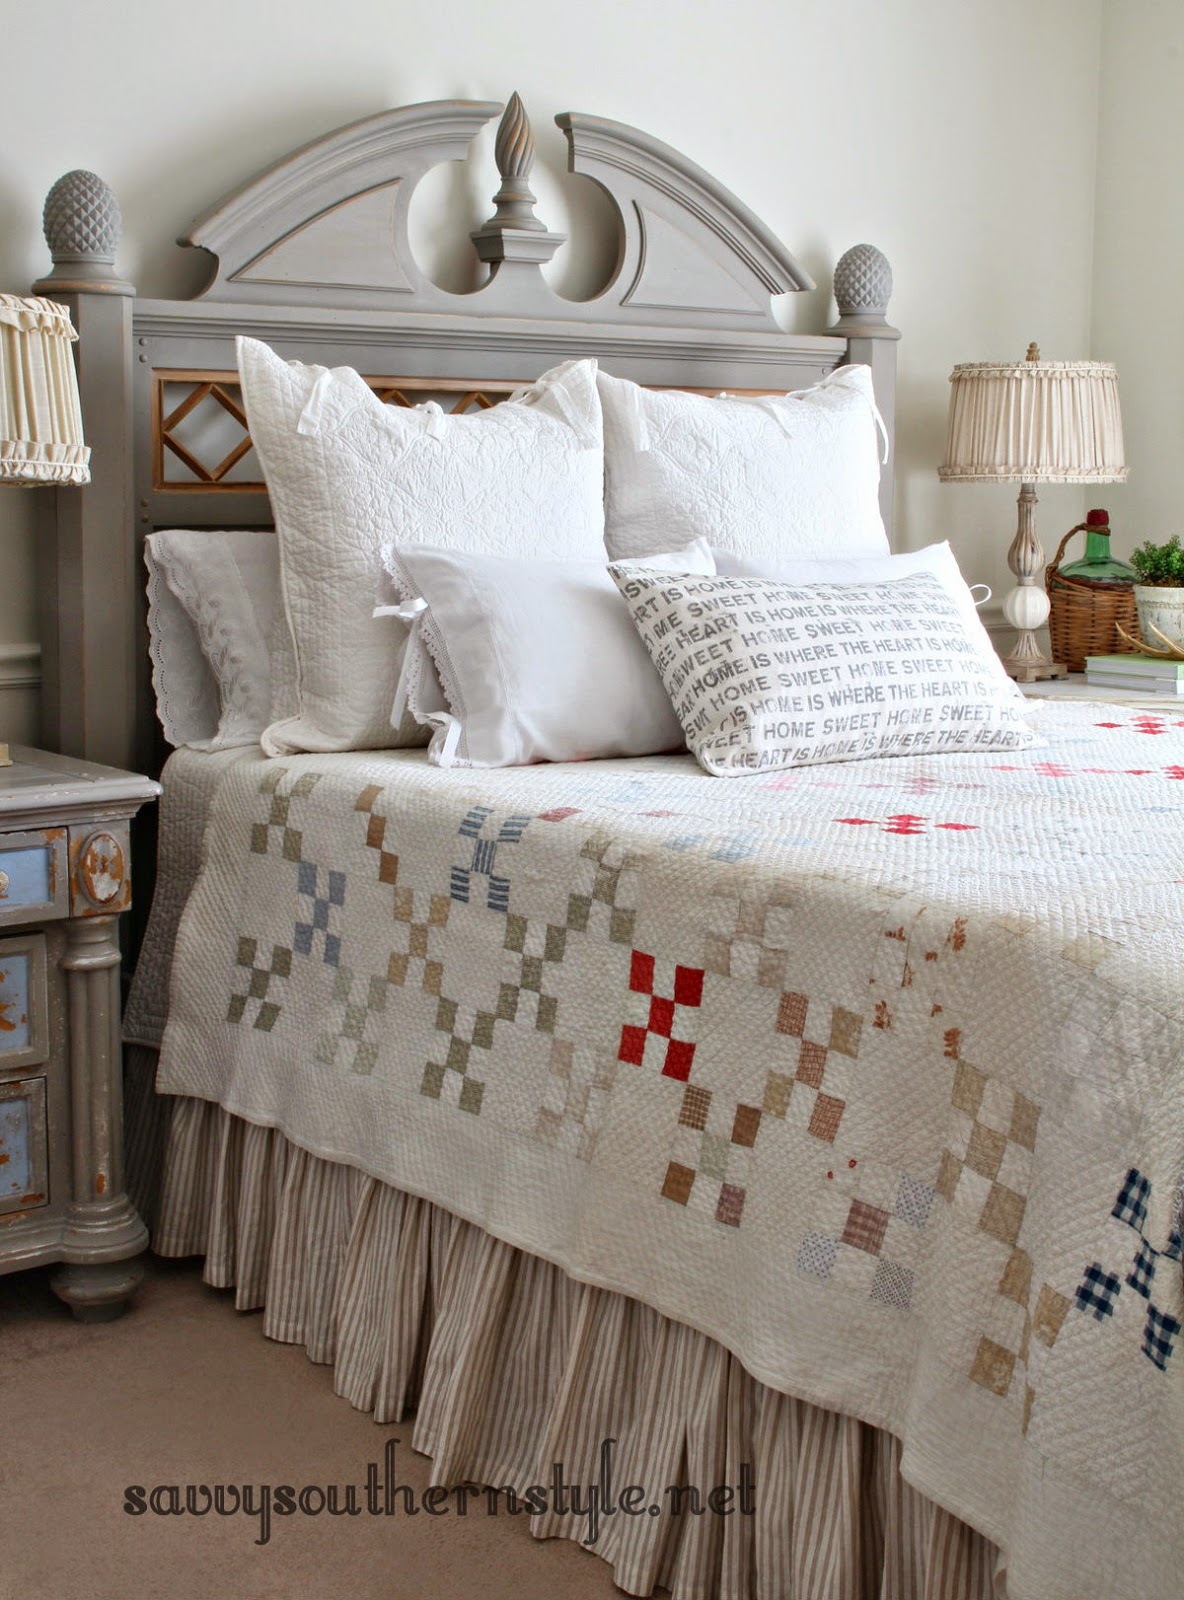 Getting A New Bed savvy southern style: old bed new look